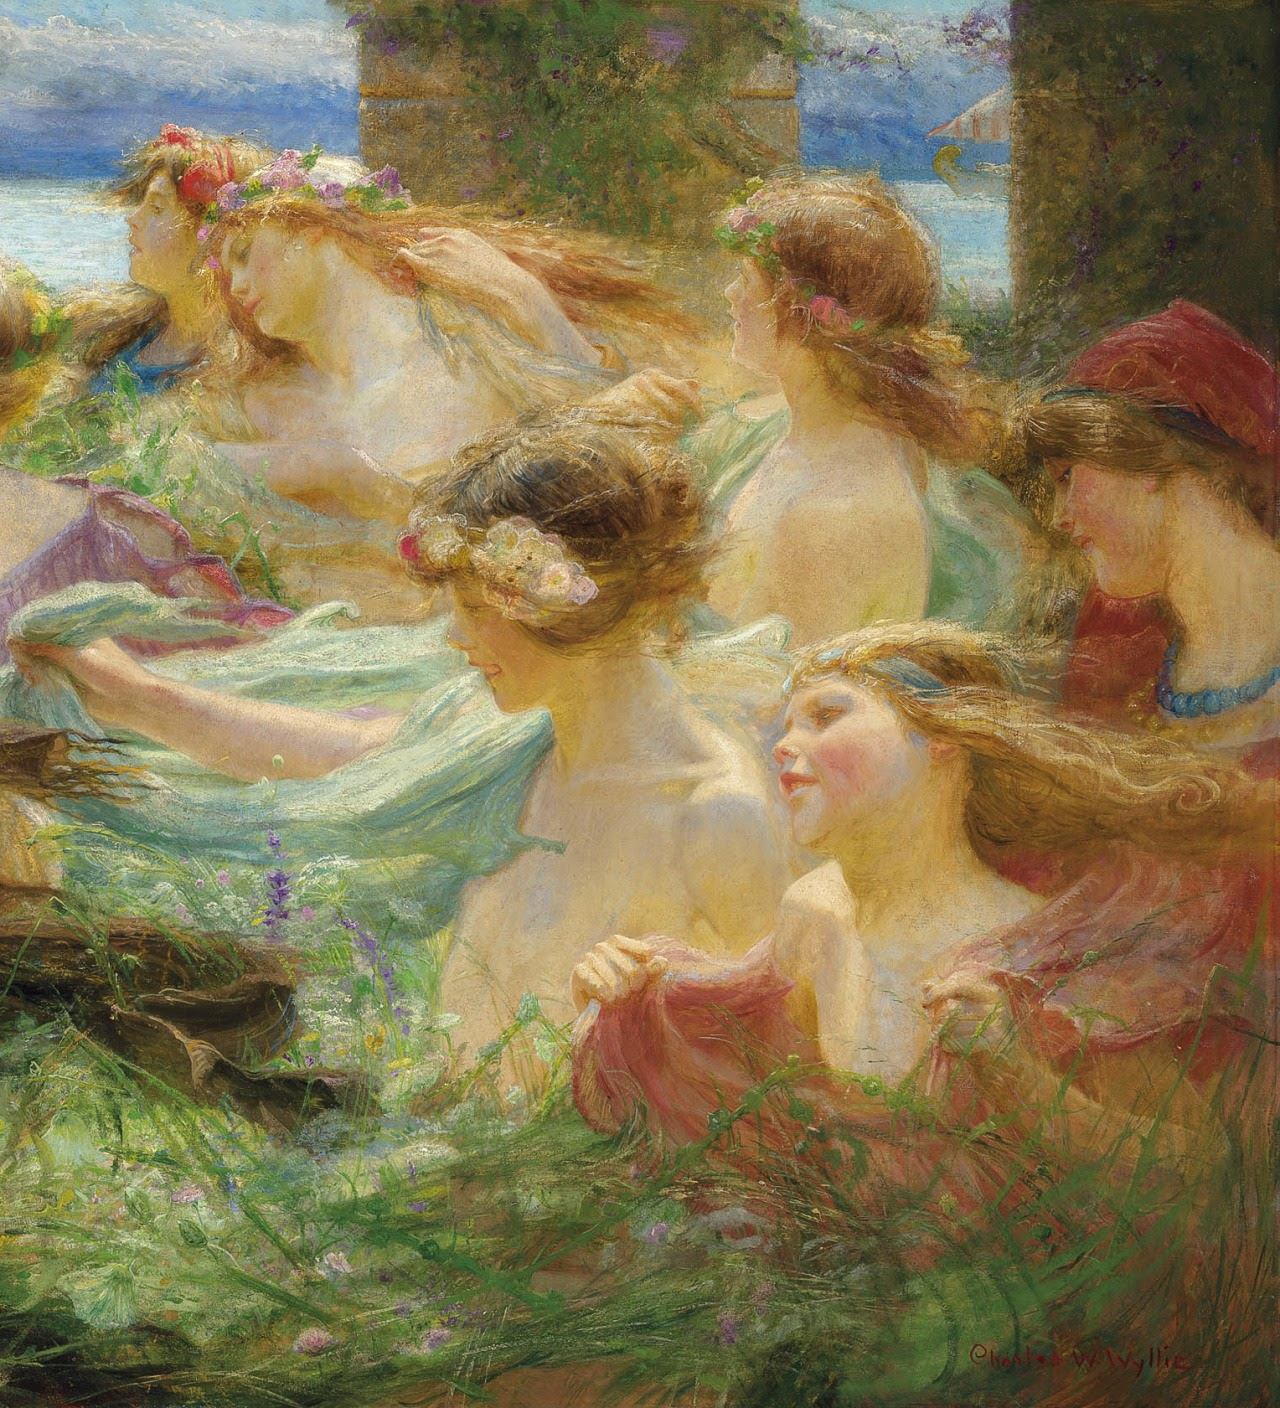 Charles William Wyllie On the way to the festival detail